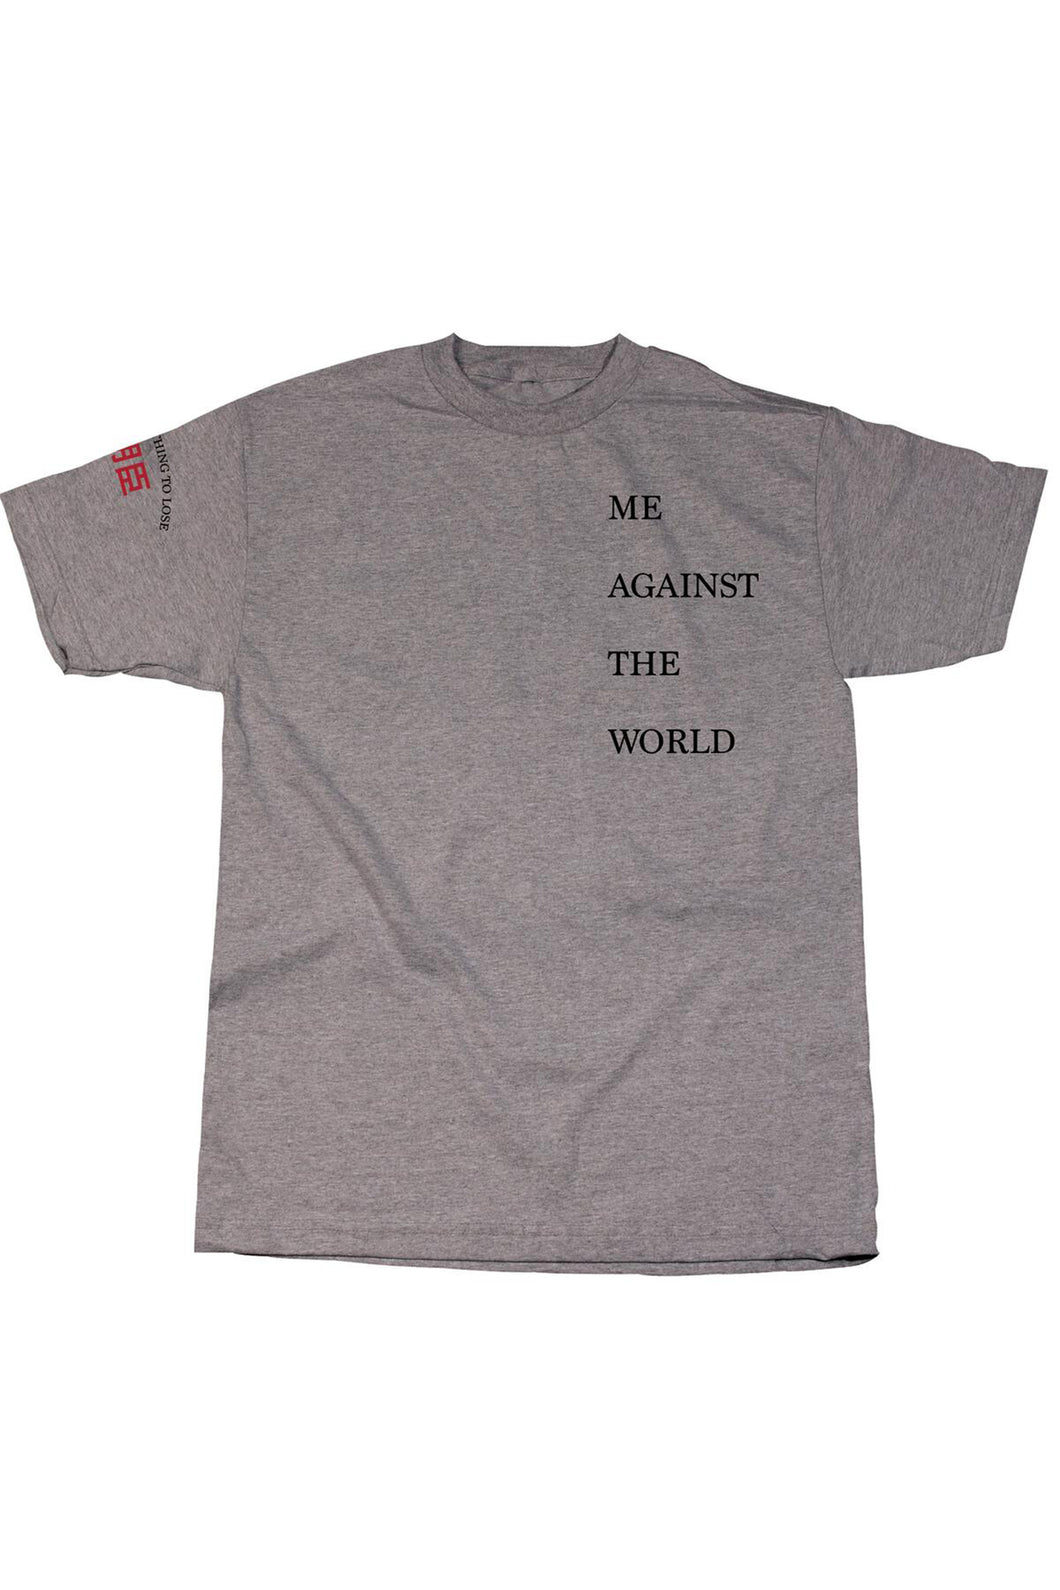 Me Against The World S/S Tee